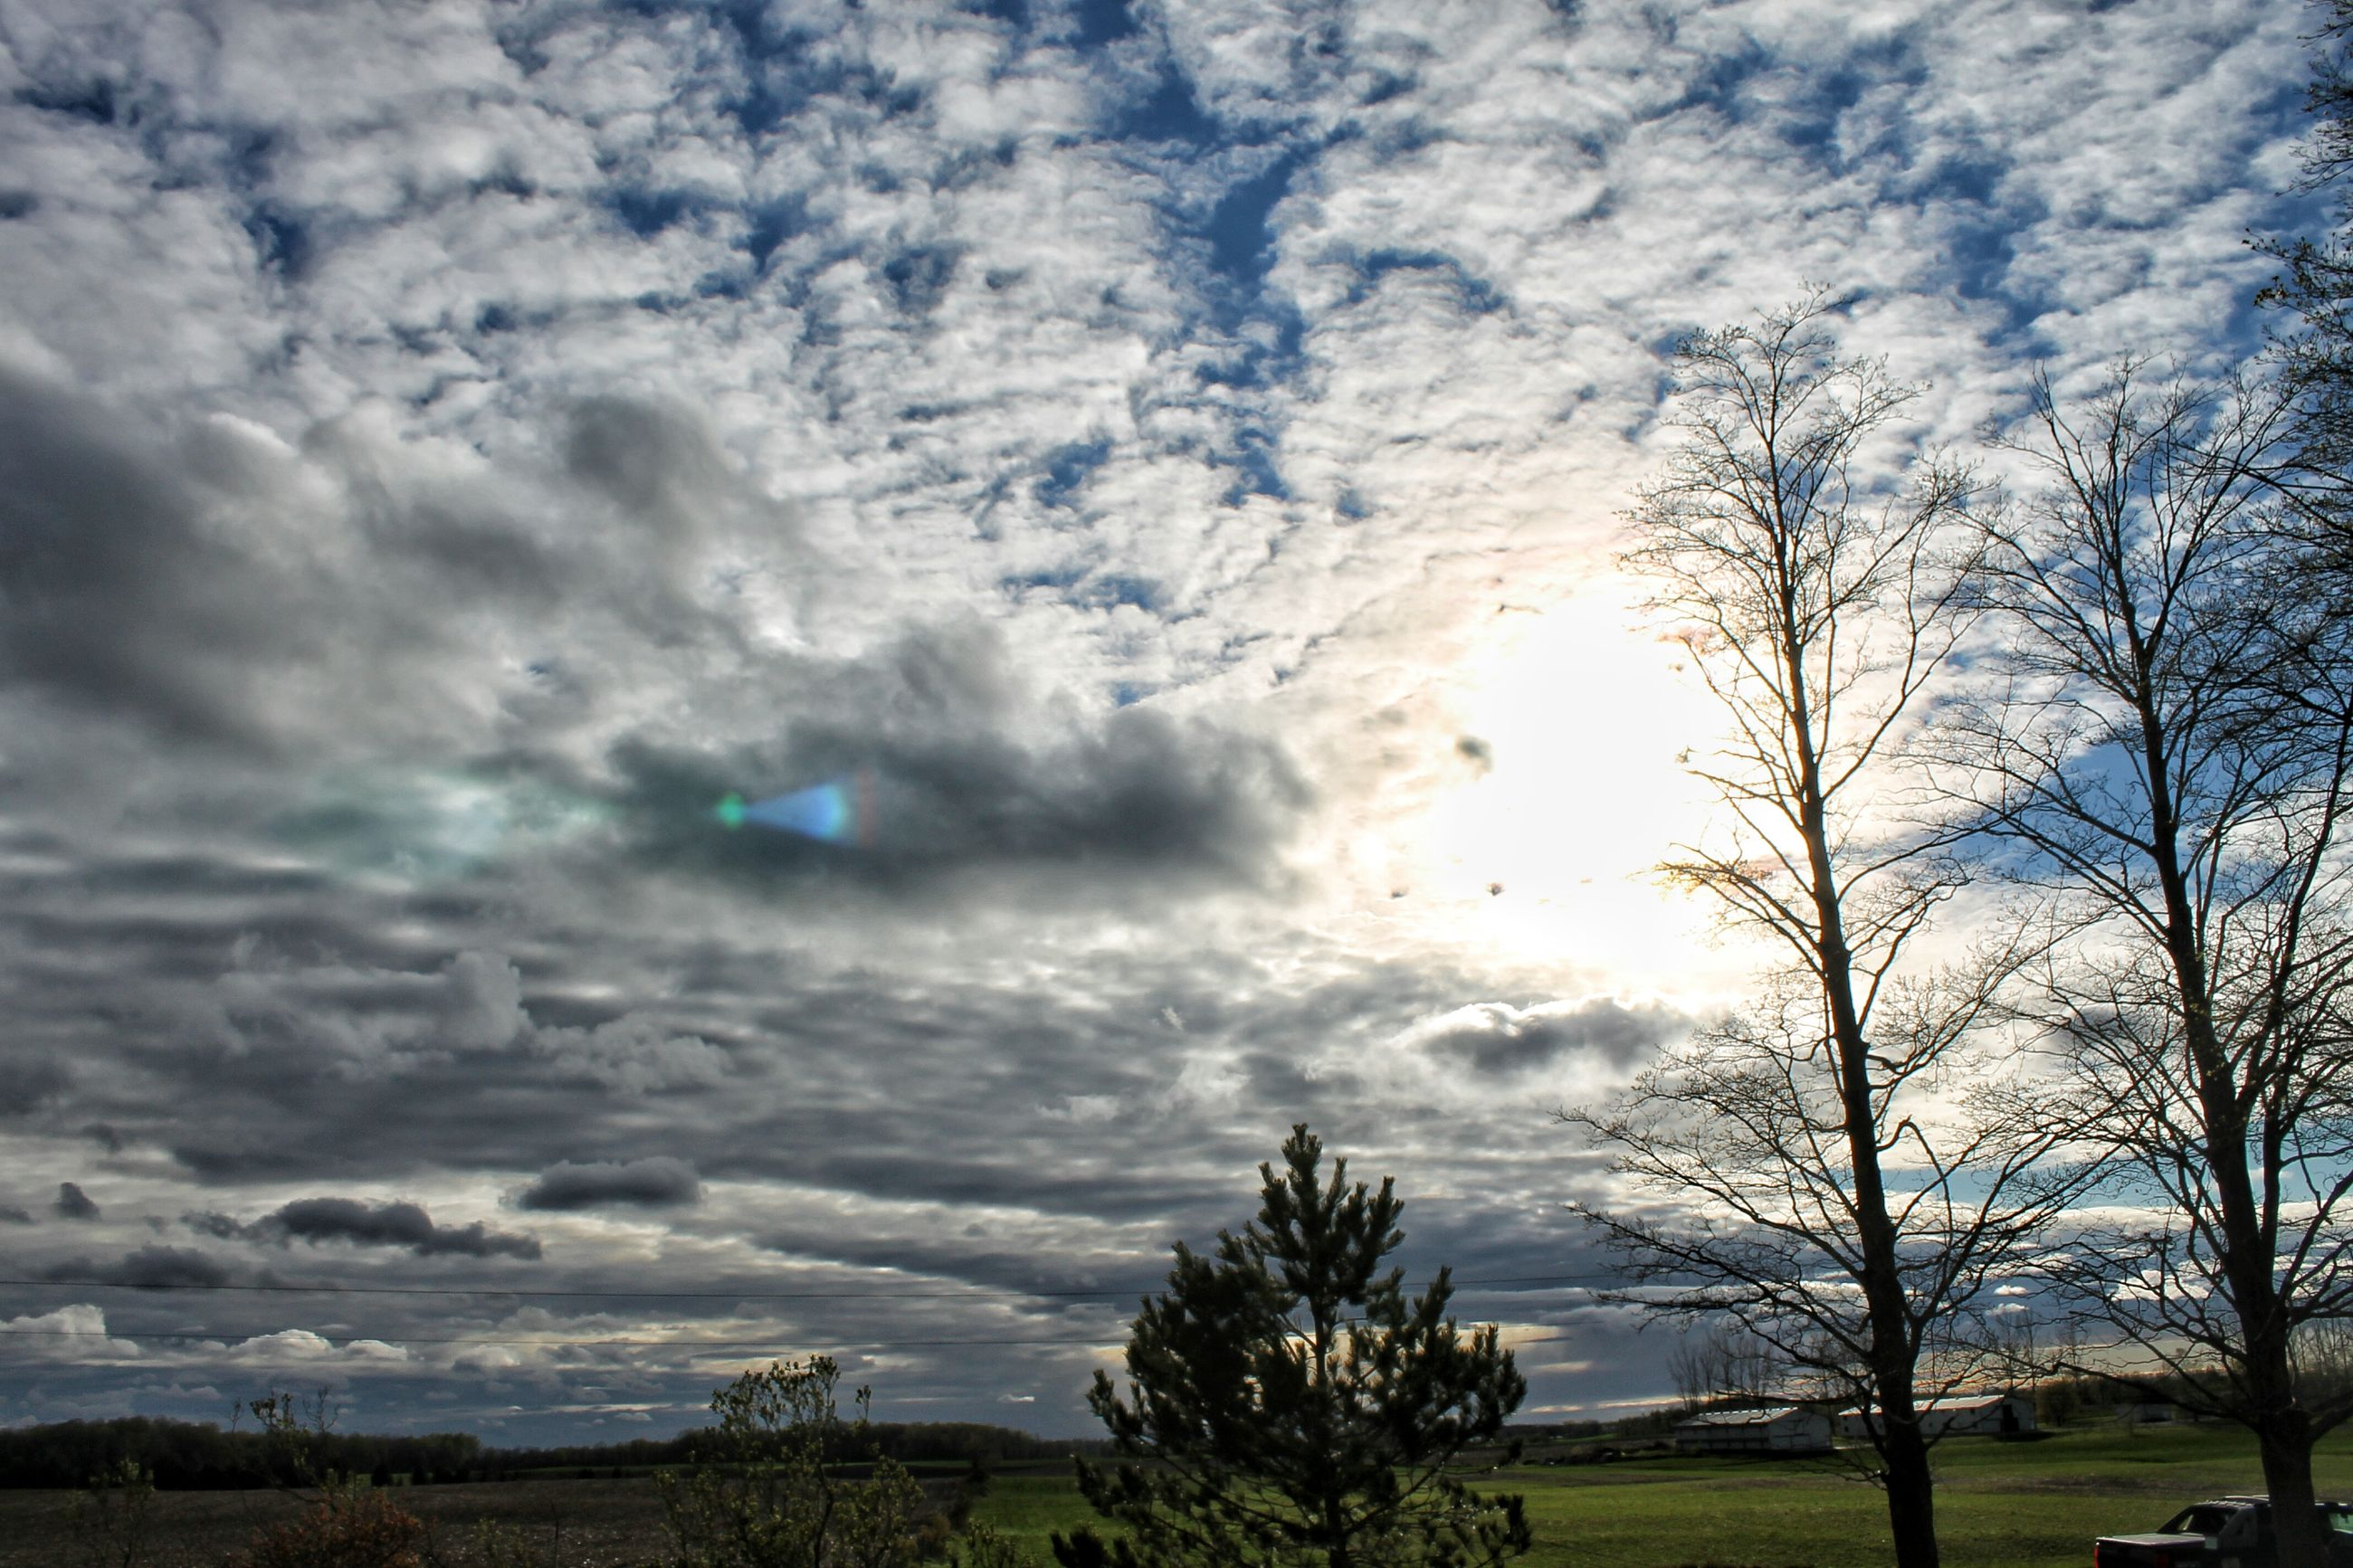 sky, cloud - sky, tree, cloudy, tranquil scene, tranquility, scenics, beauty in nature, nature, landscape, cloud, grass, field, weather, bare tree, overcast, idyllic, dramatic sky, outdoors, non-urban scene